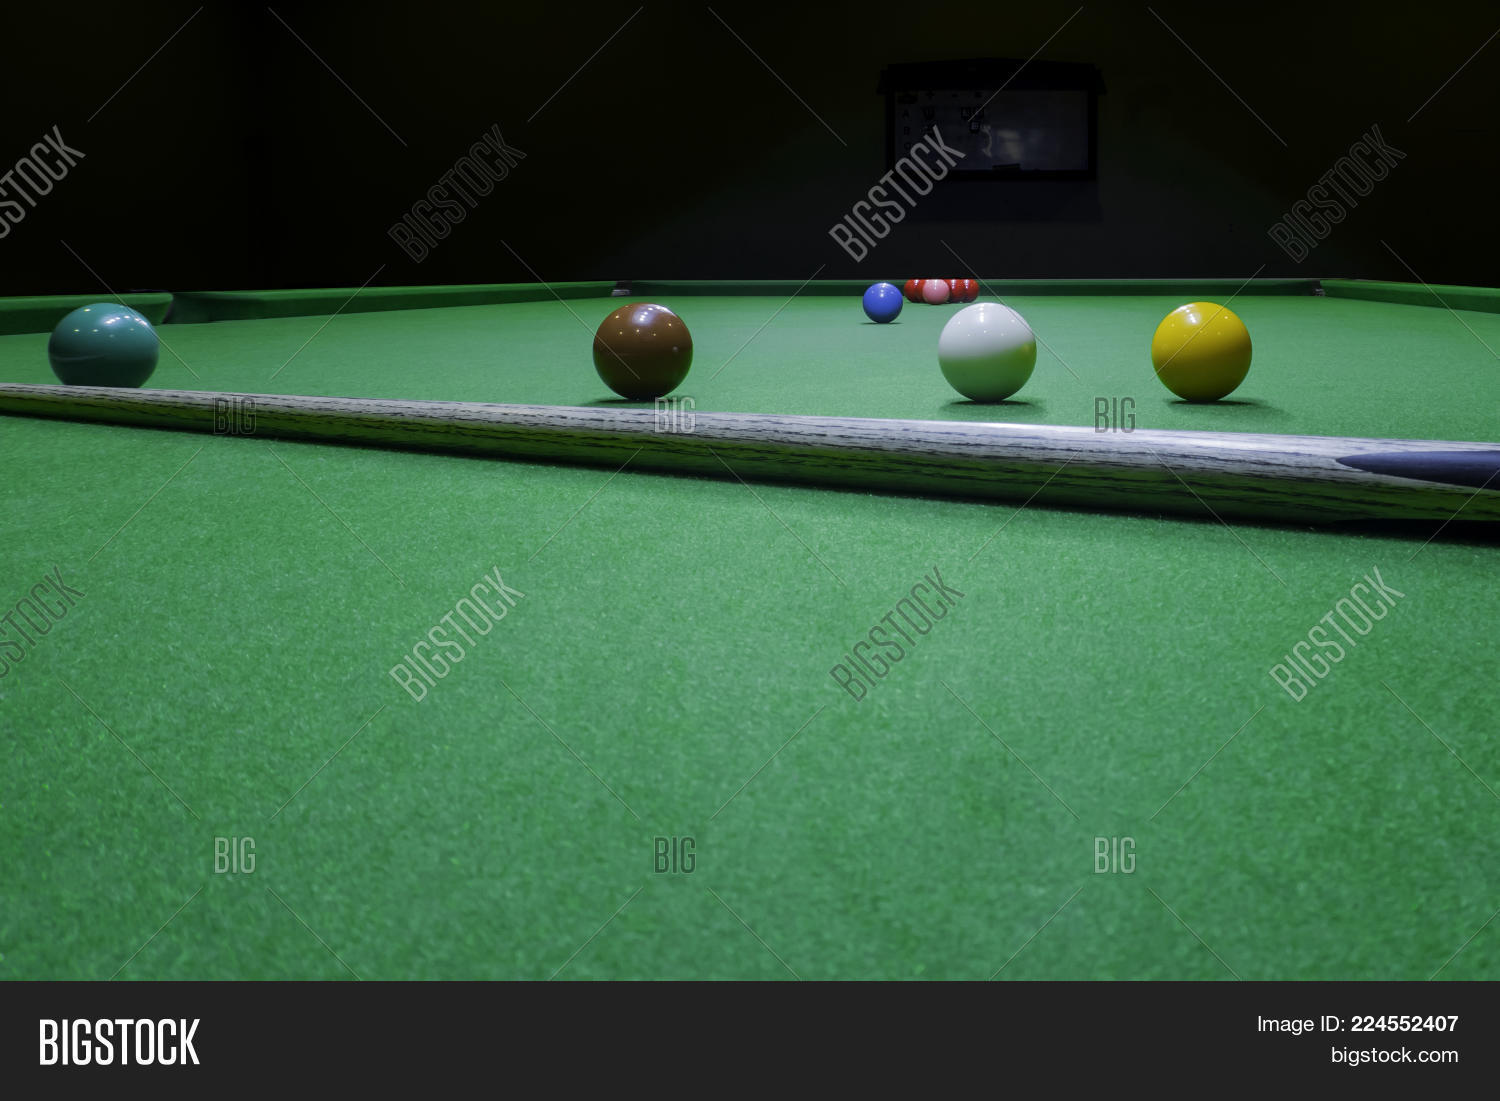 Snooker Balls And Wood Cue Sno 224552407 Image Stock Photo 224552407